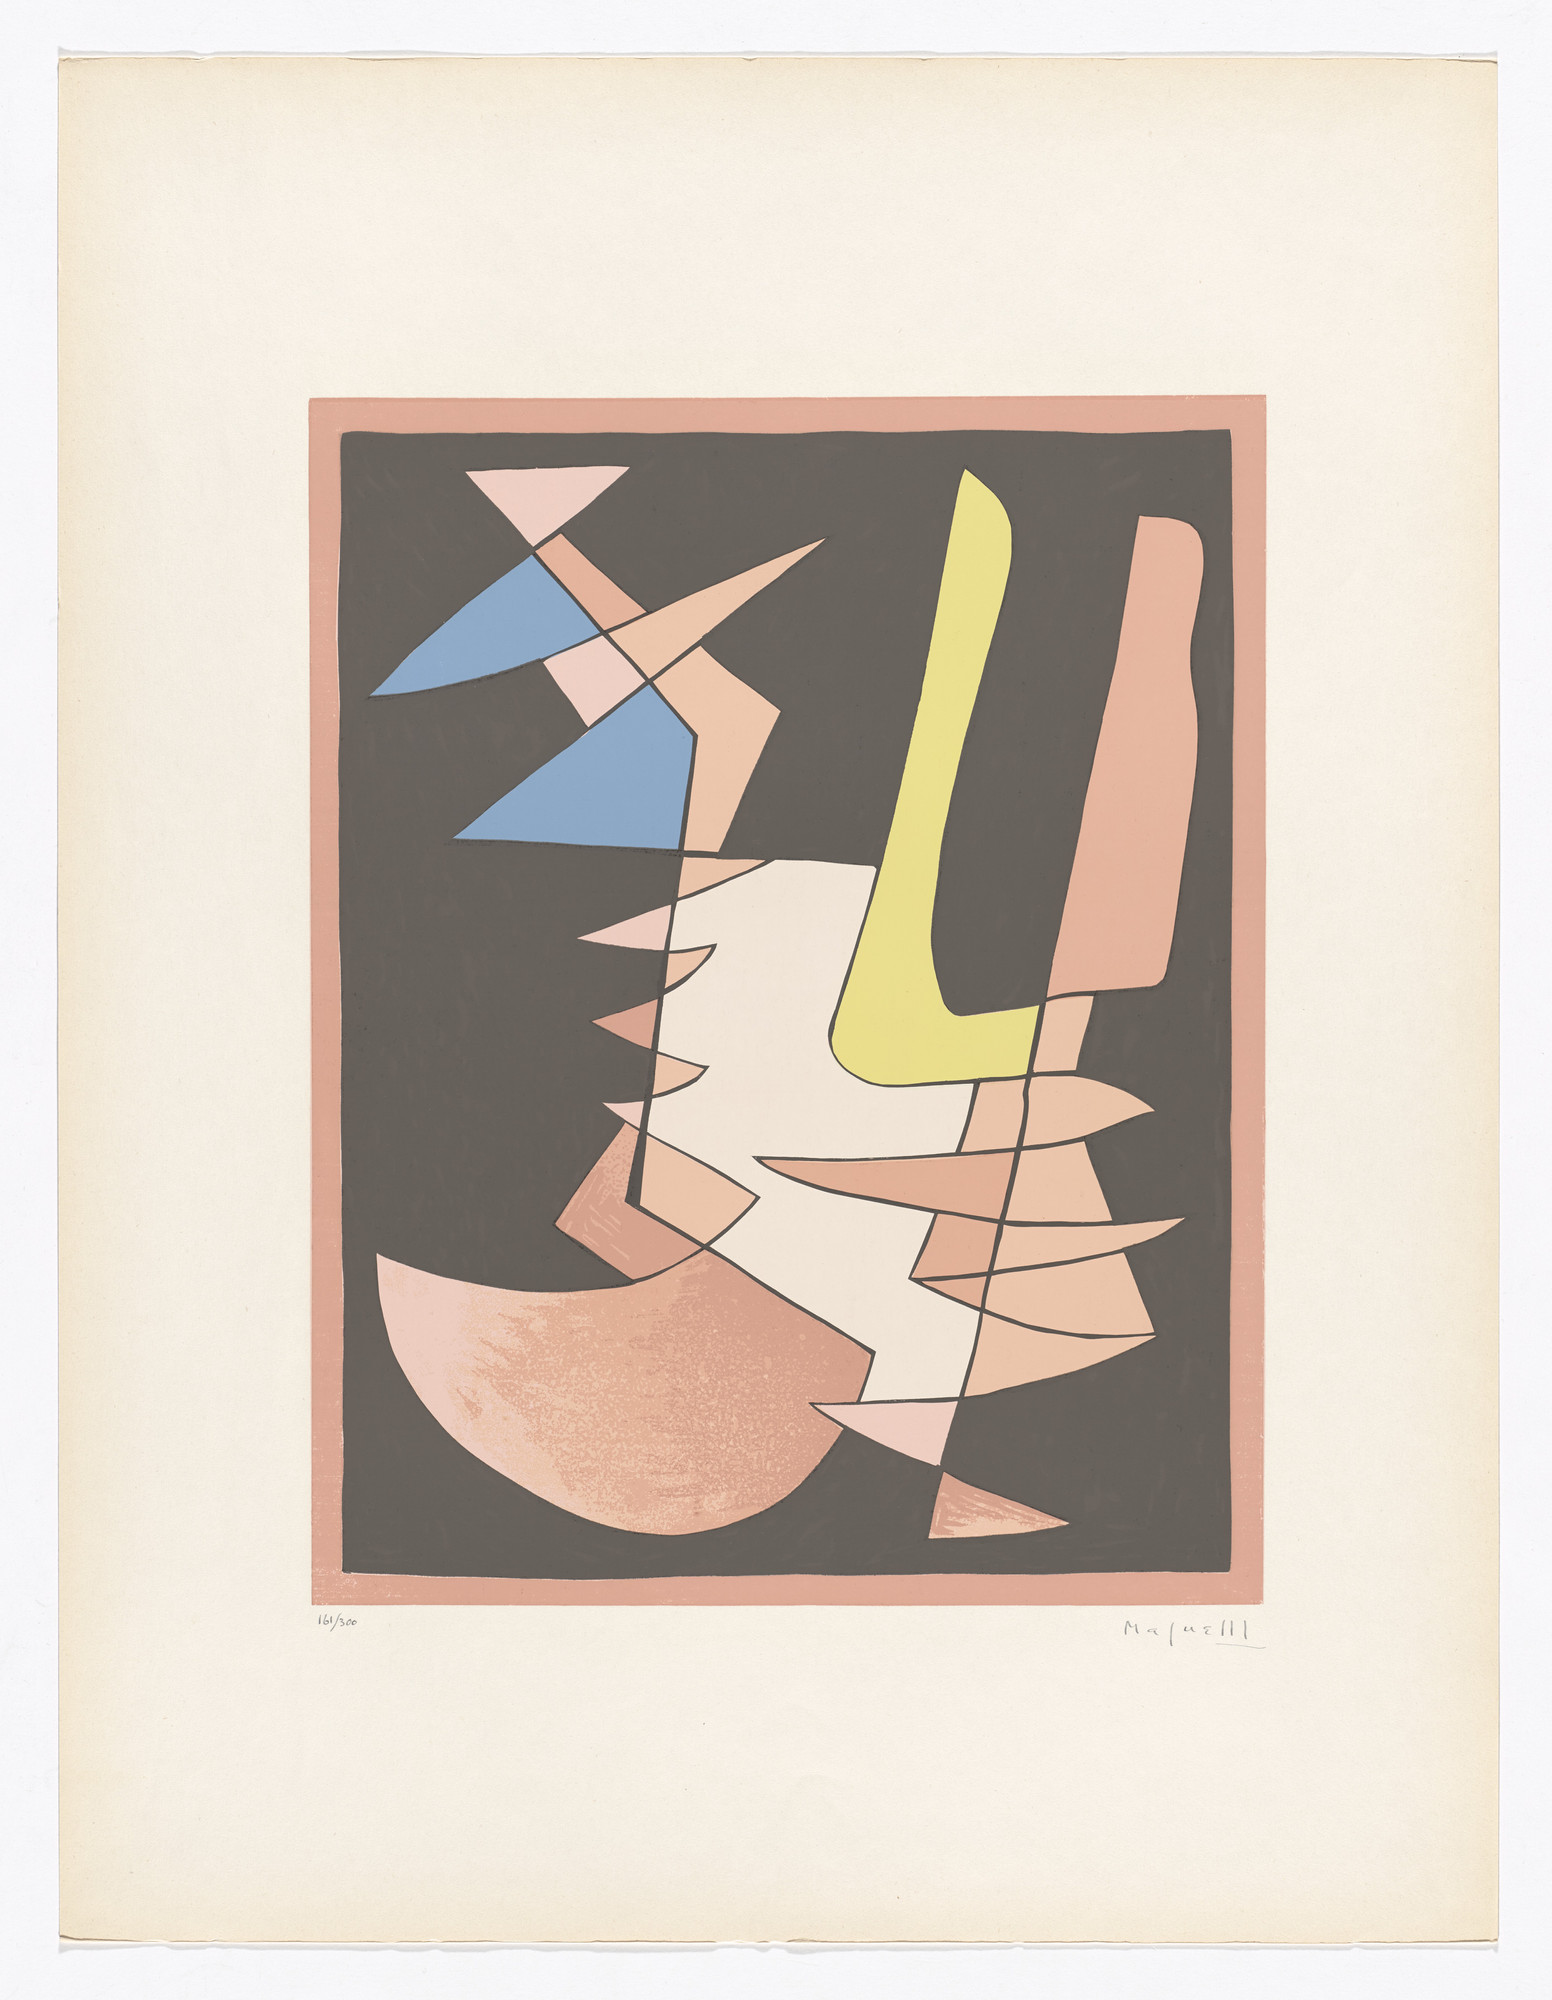 Alberto Magnelli. Opposition from Art of Today, Masters of Abstract Art (Art d'aujourd'hui, maîtres de l'art abstrait): Album I. 1953 (original composition executed in 1942)